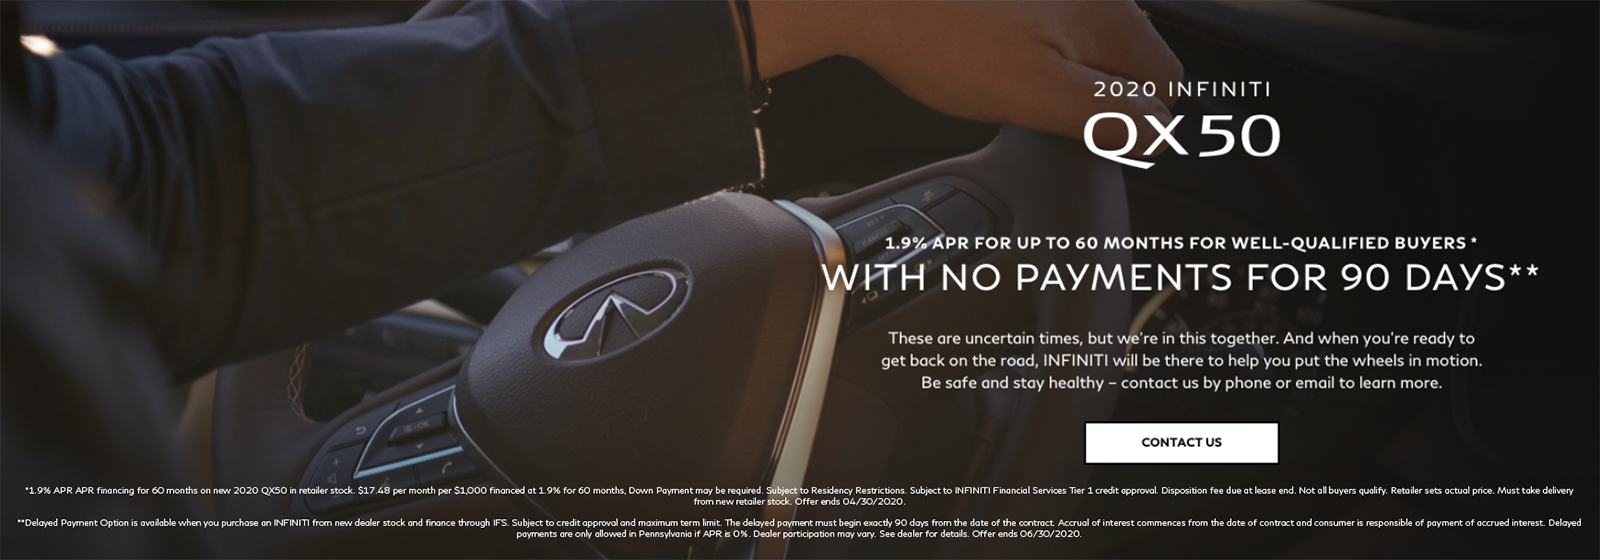 2020 INFINITI QX50 1.9% APR for up to 60 Months for well-qualified buyers with no payments for 90 days. Contact Us.